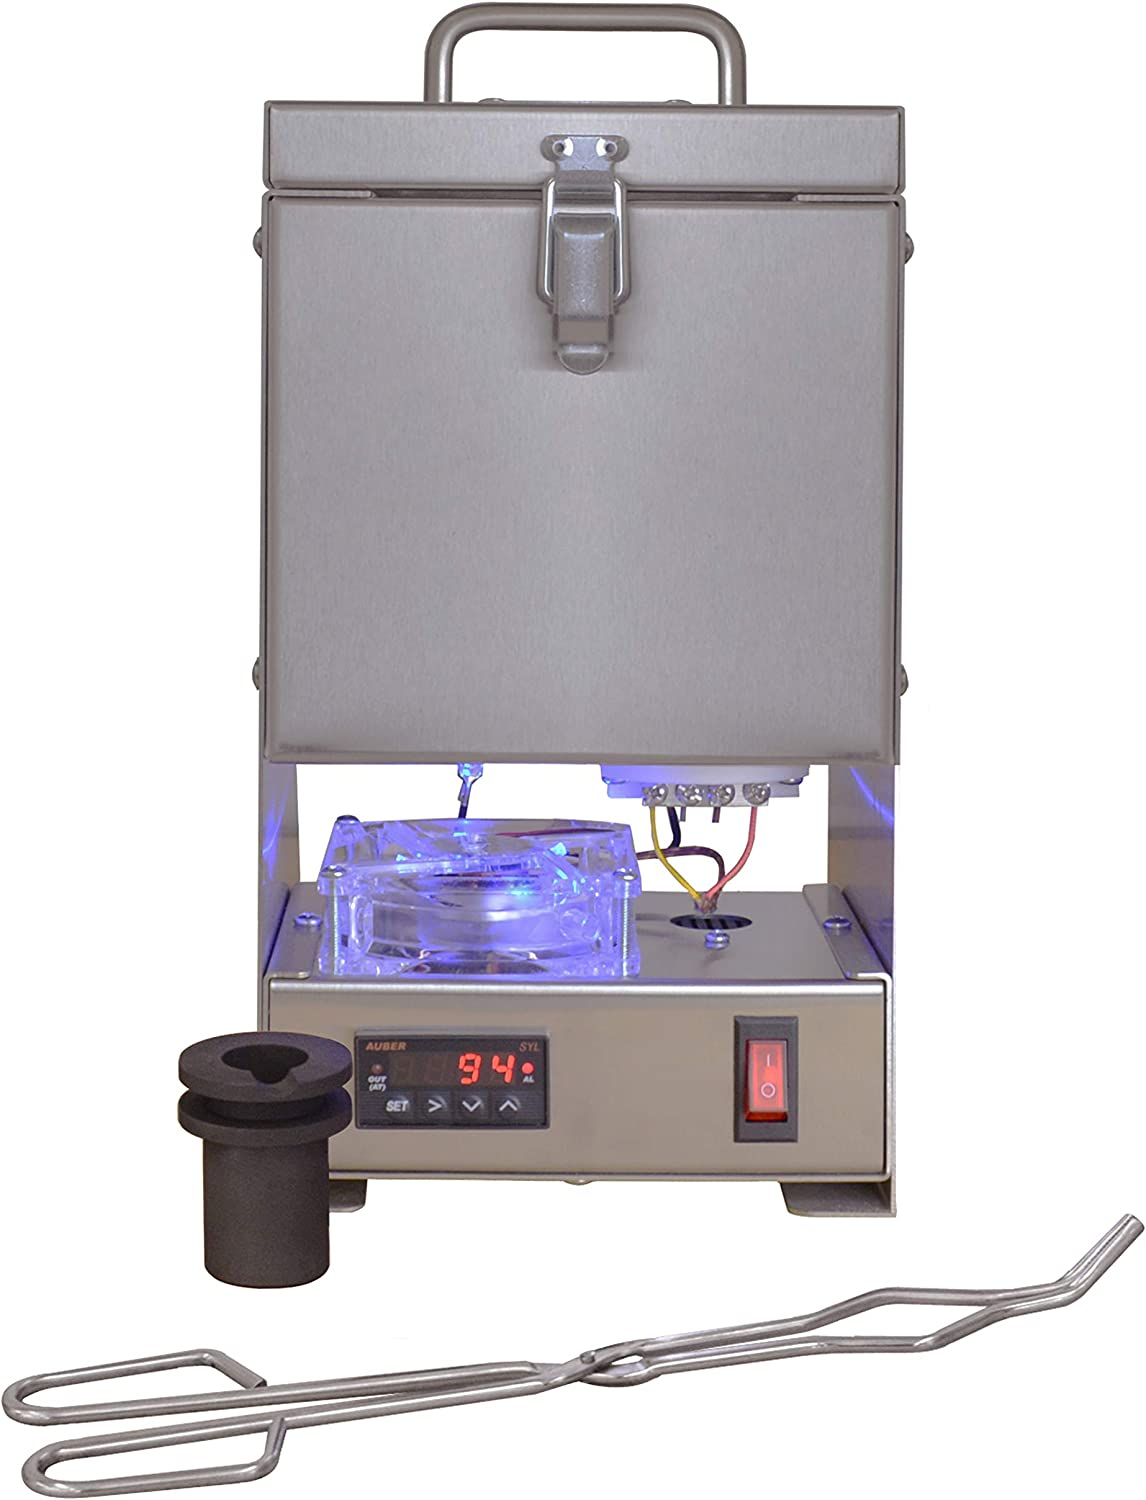 Table Top QuikMelt Pro Metals Melting Furnace / Kiln with 10 ounce Crucible and Tongs